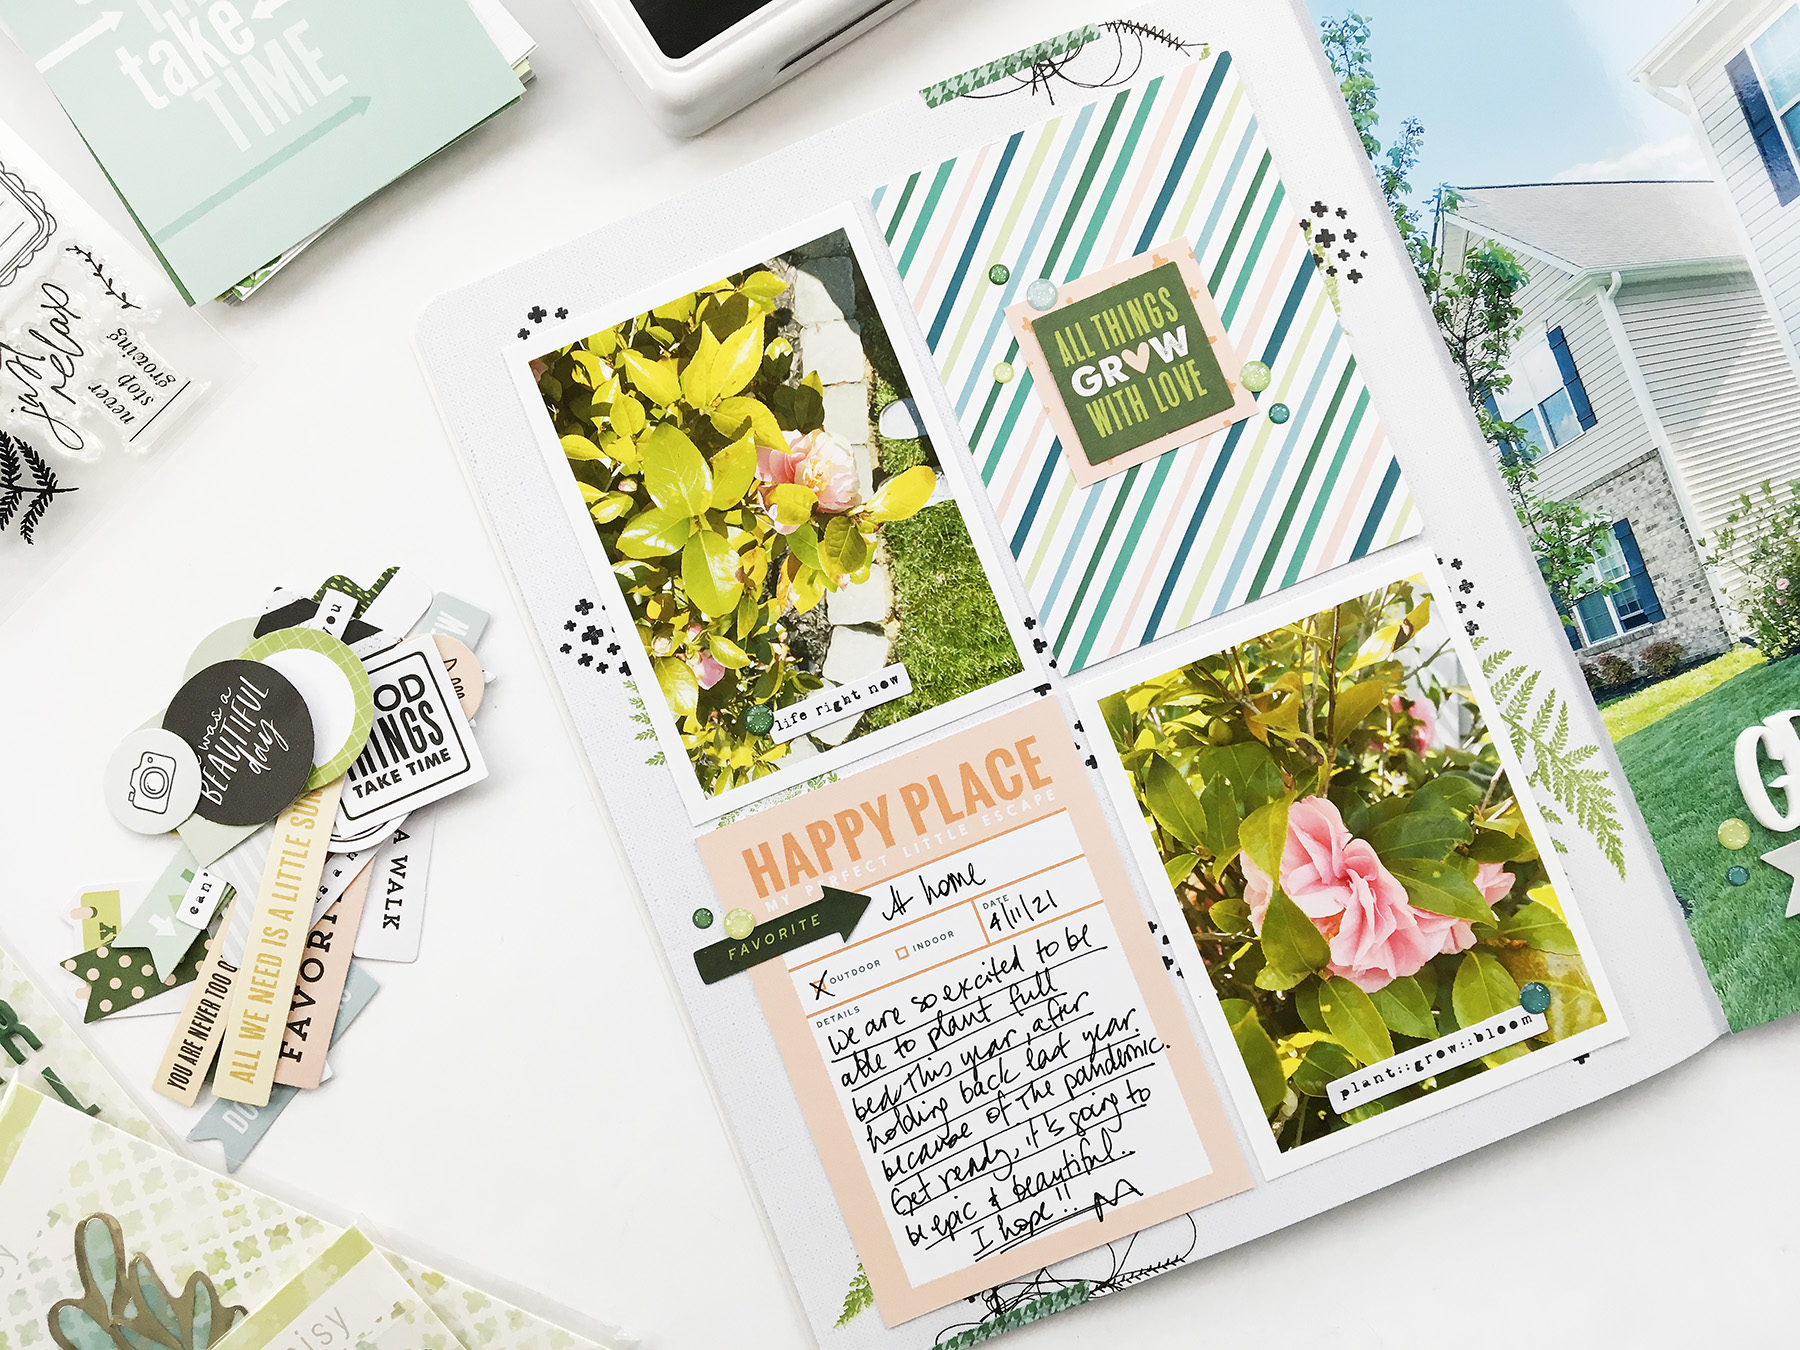 Theresa Moxley Storyline Album Layout   Grow